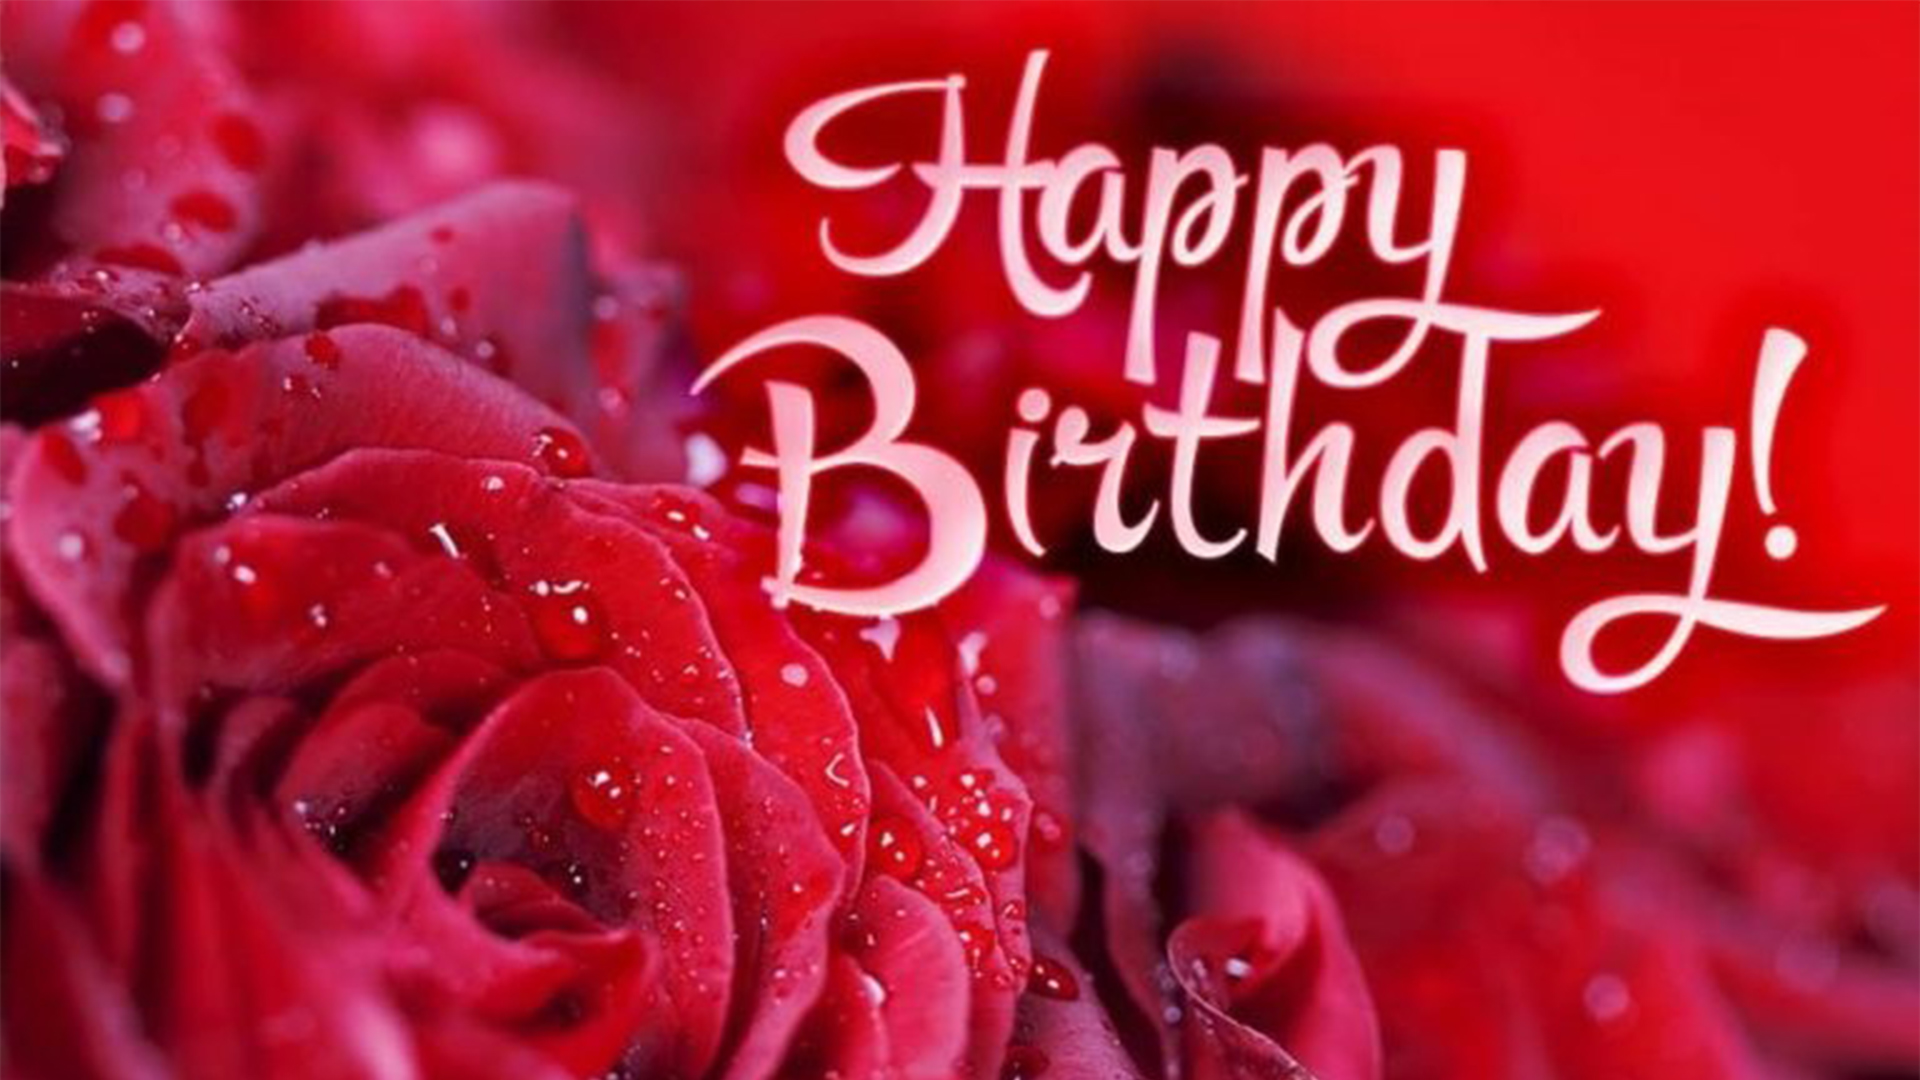 Happy Birthday Images Pictures Amp Hd Wallpapers 2018 Free